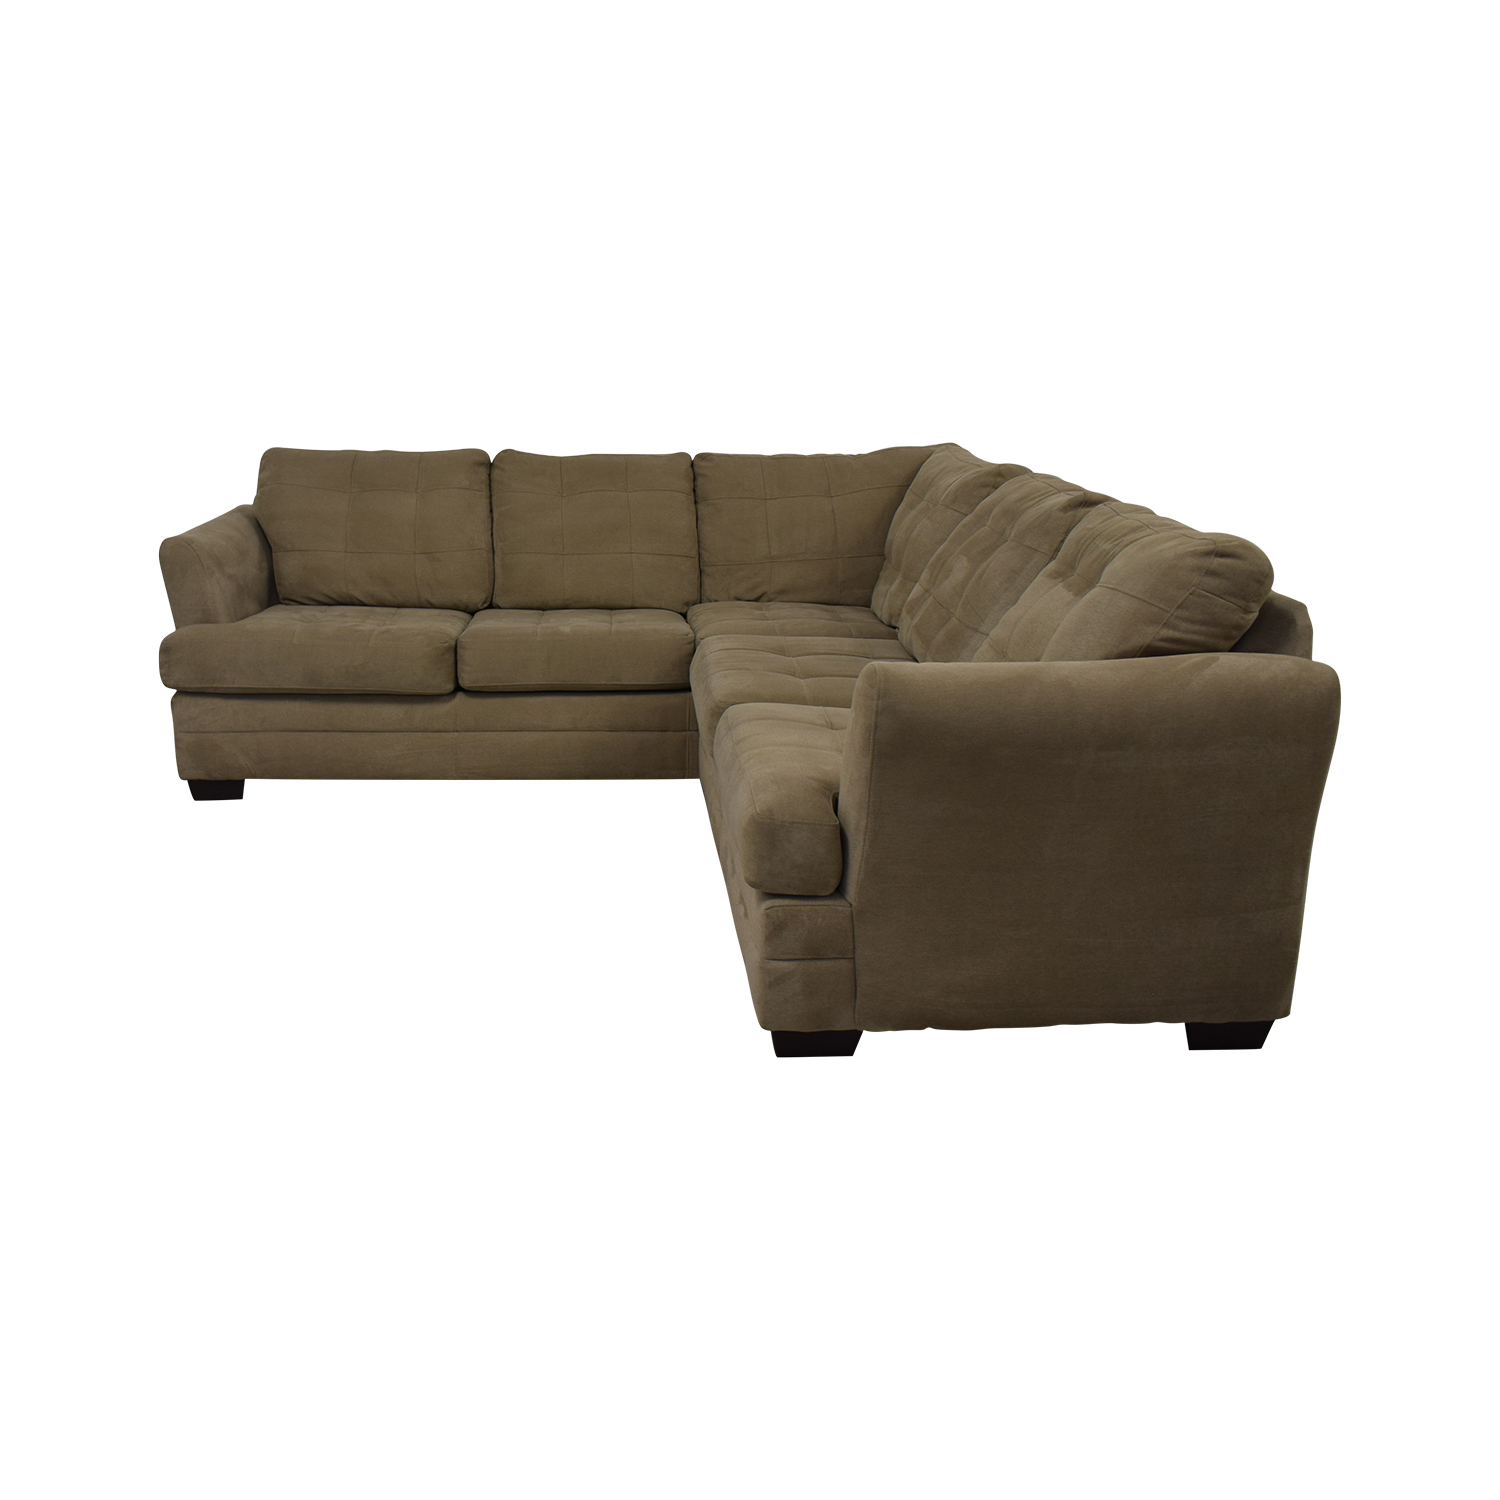 Raymour & Flanigan Raymour & Flanigan Sectional